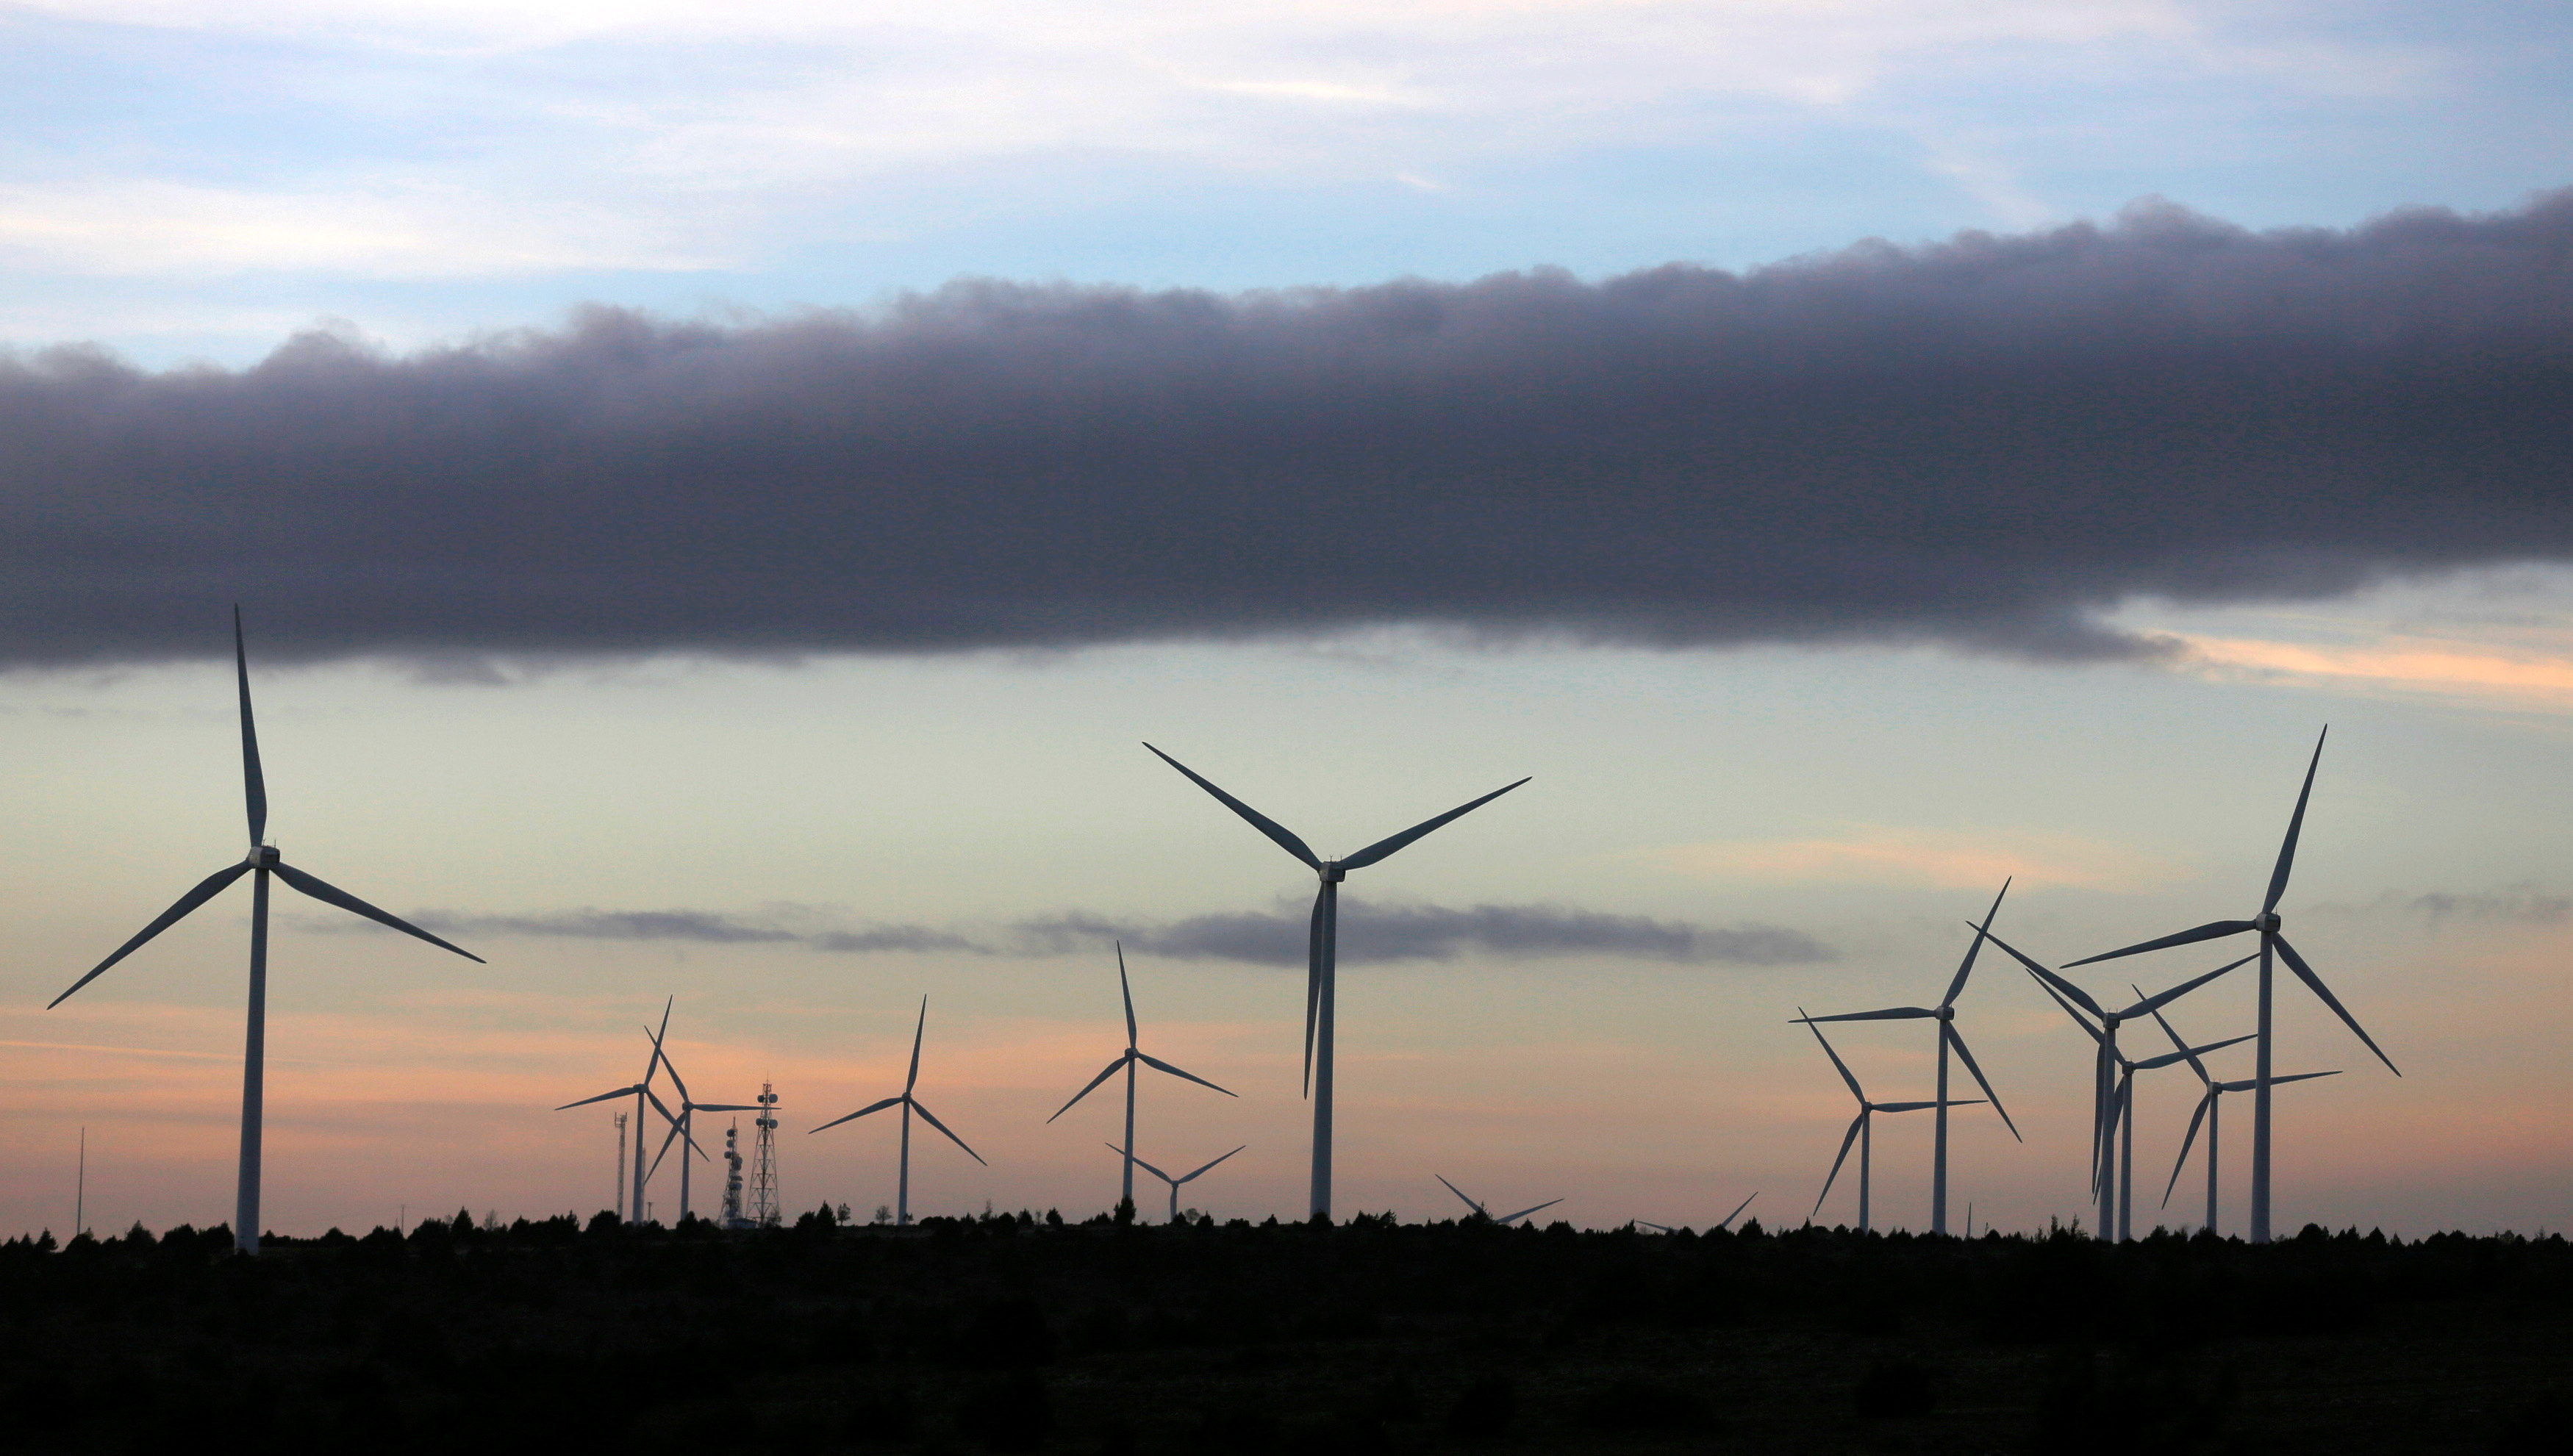 Iberdrola's power generating wind turbines are seen at dusk at the Moranchon wind farm in central Spain, December 17, 2012. REUTERS/Sergio Perez